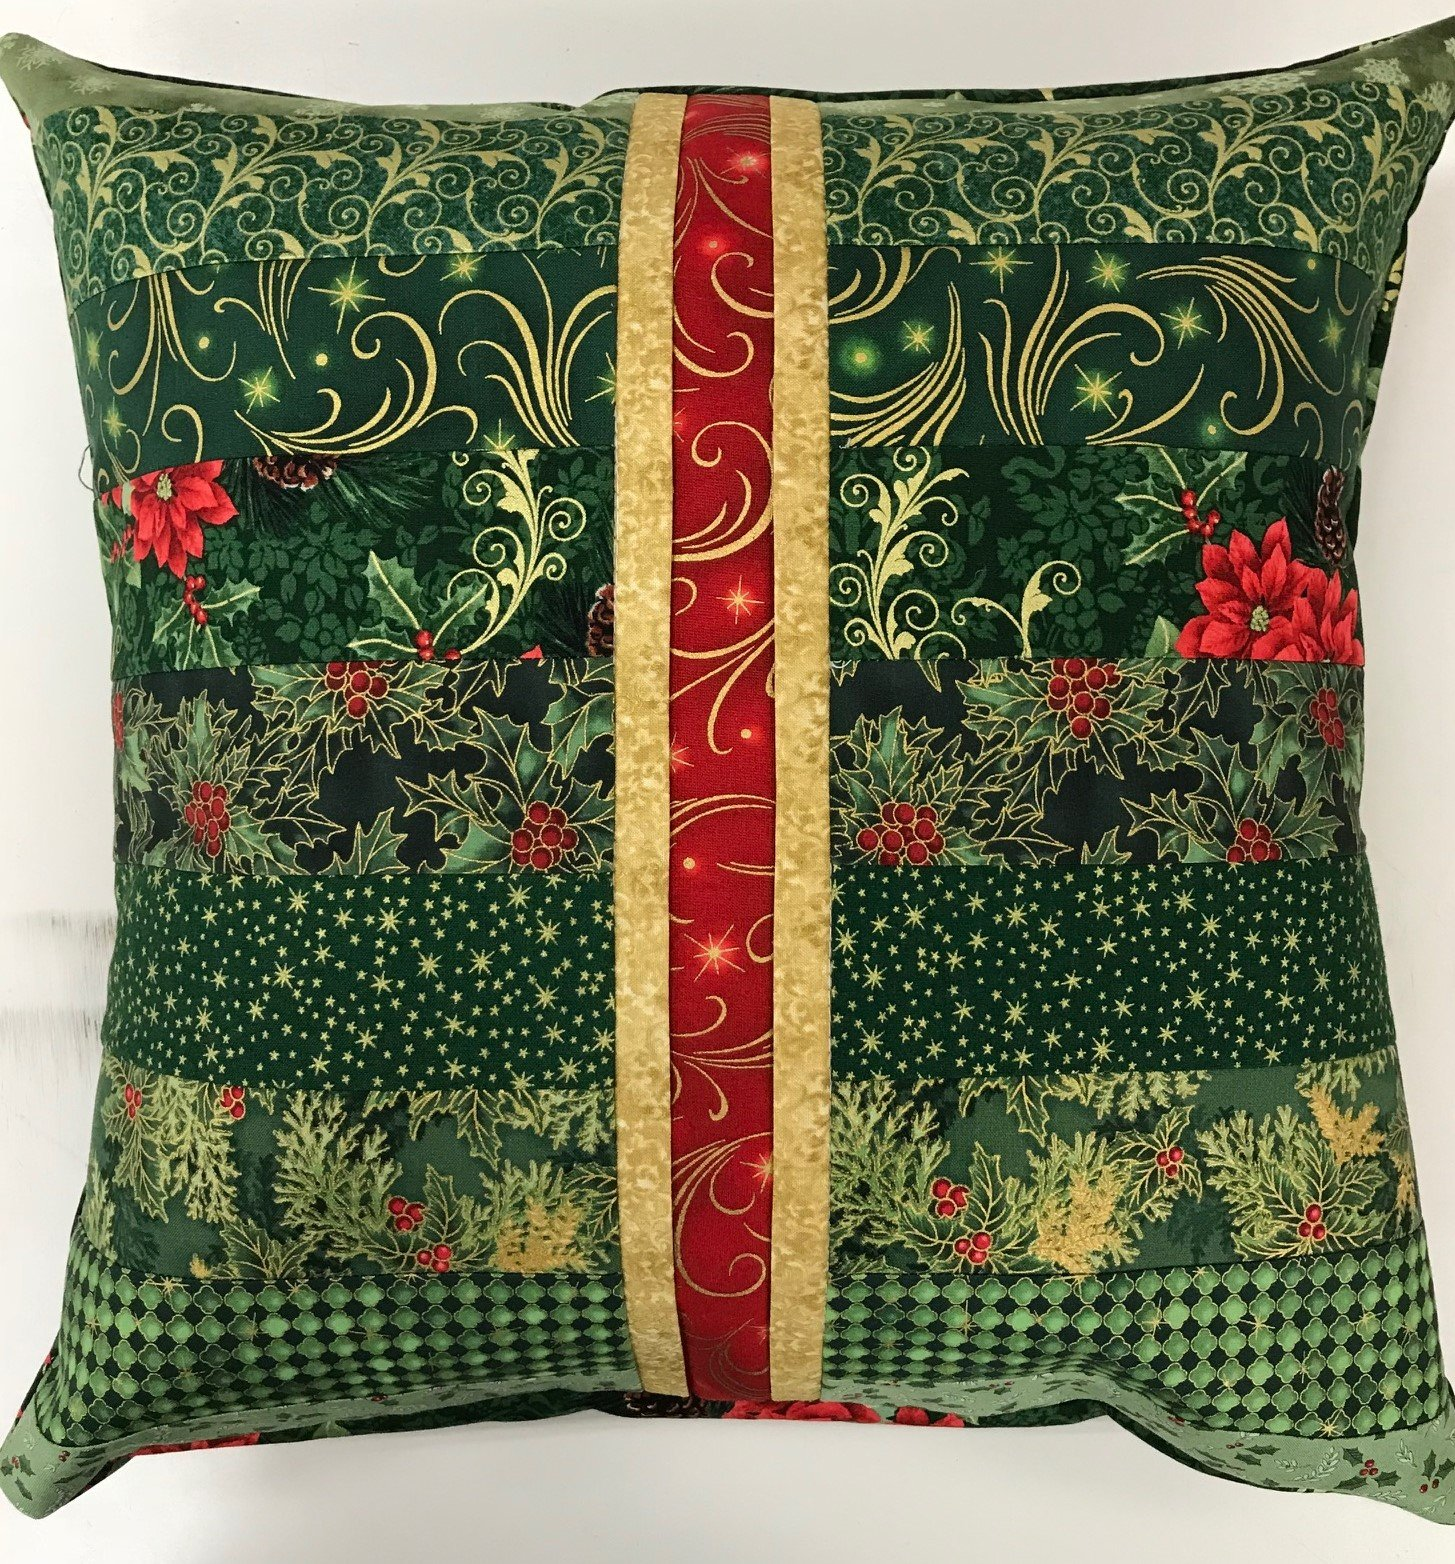 Beginner Rotary Cutter Pillow - Christmas 2 Version